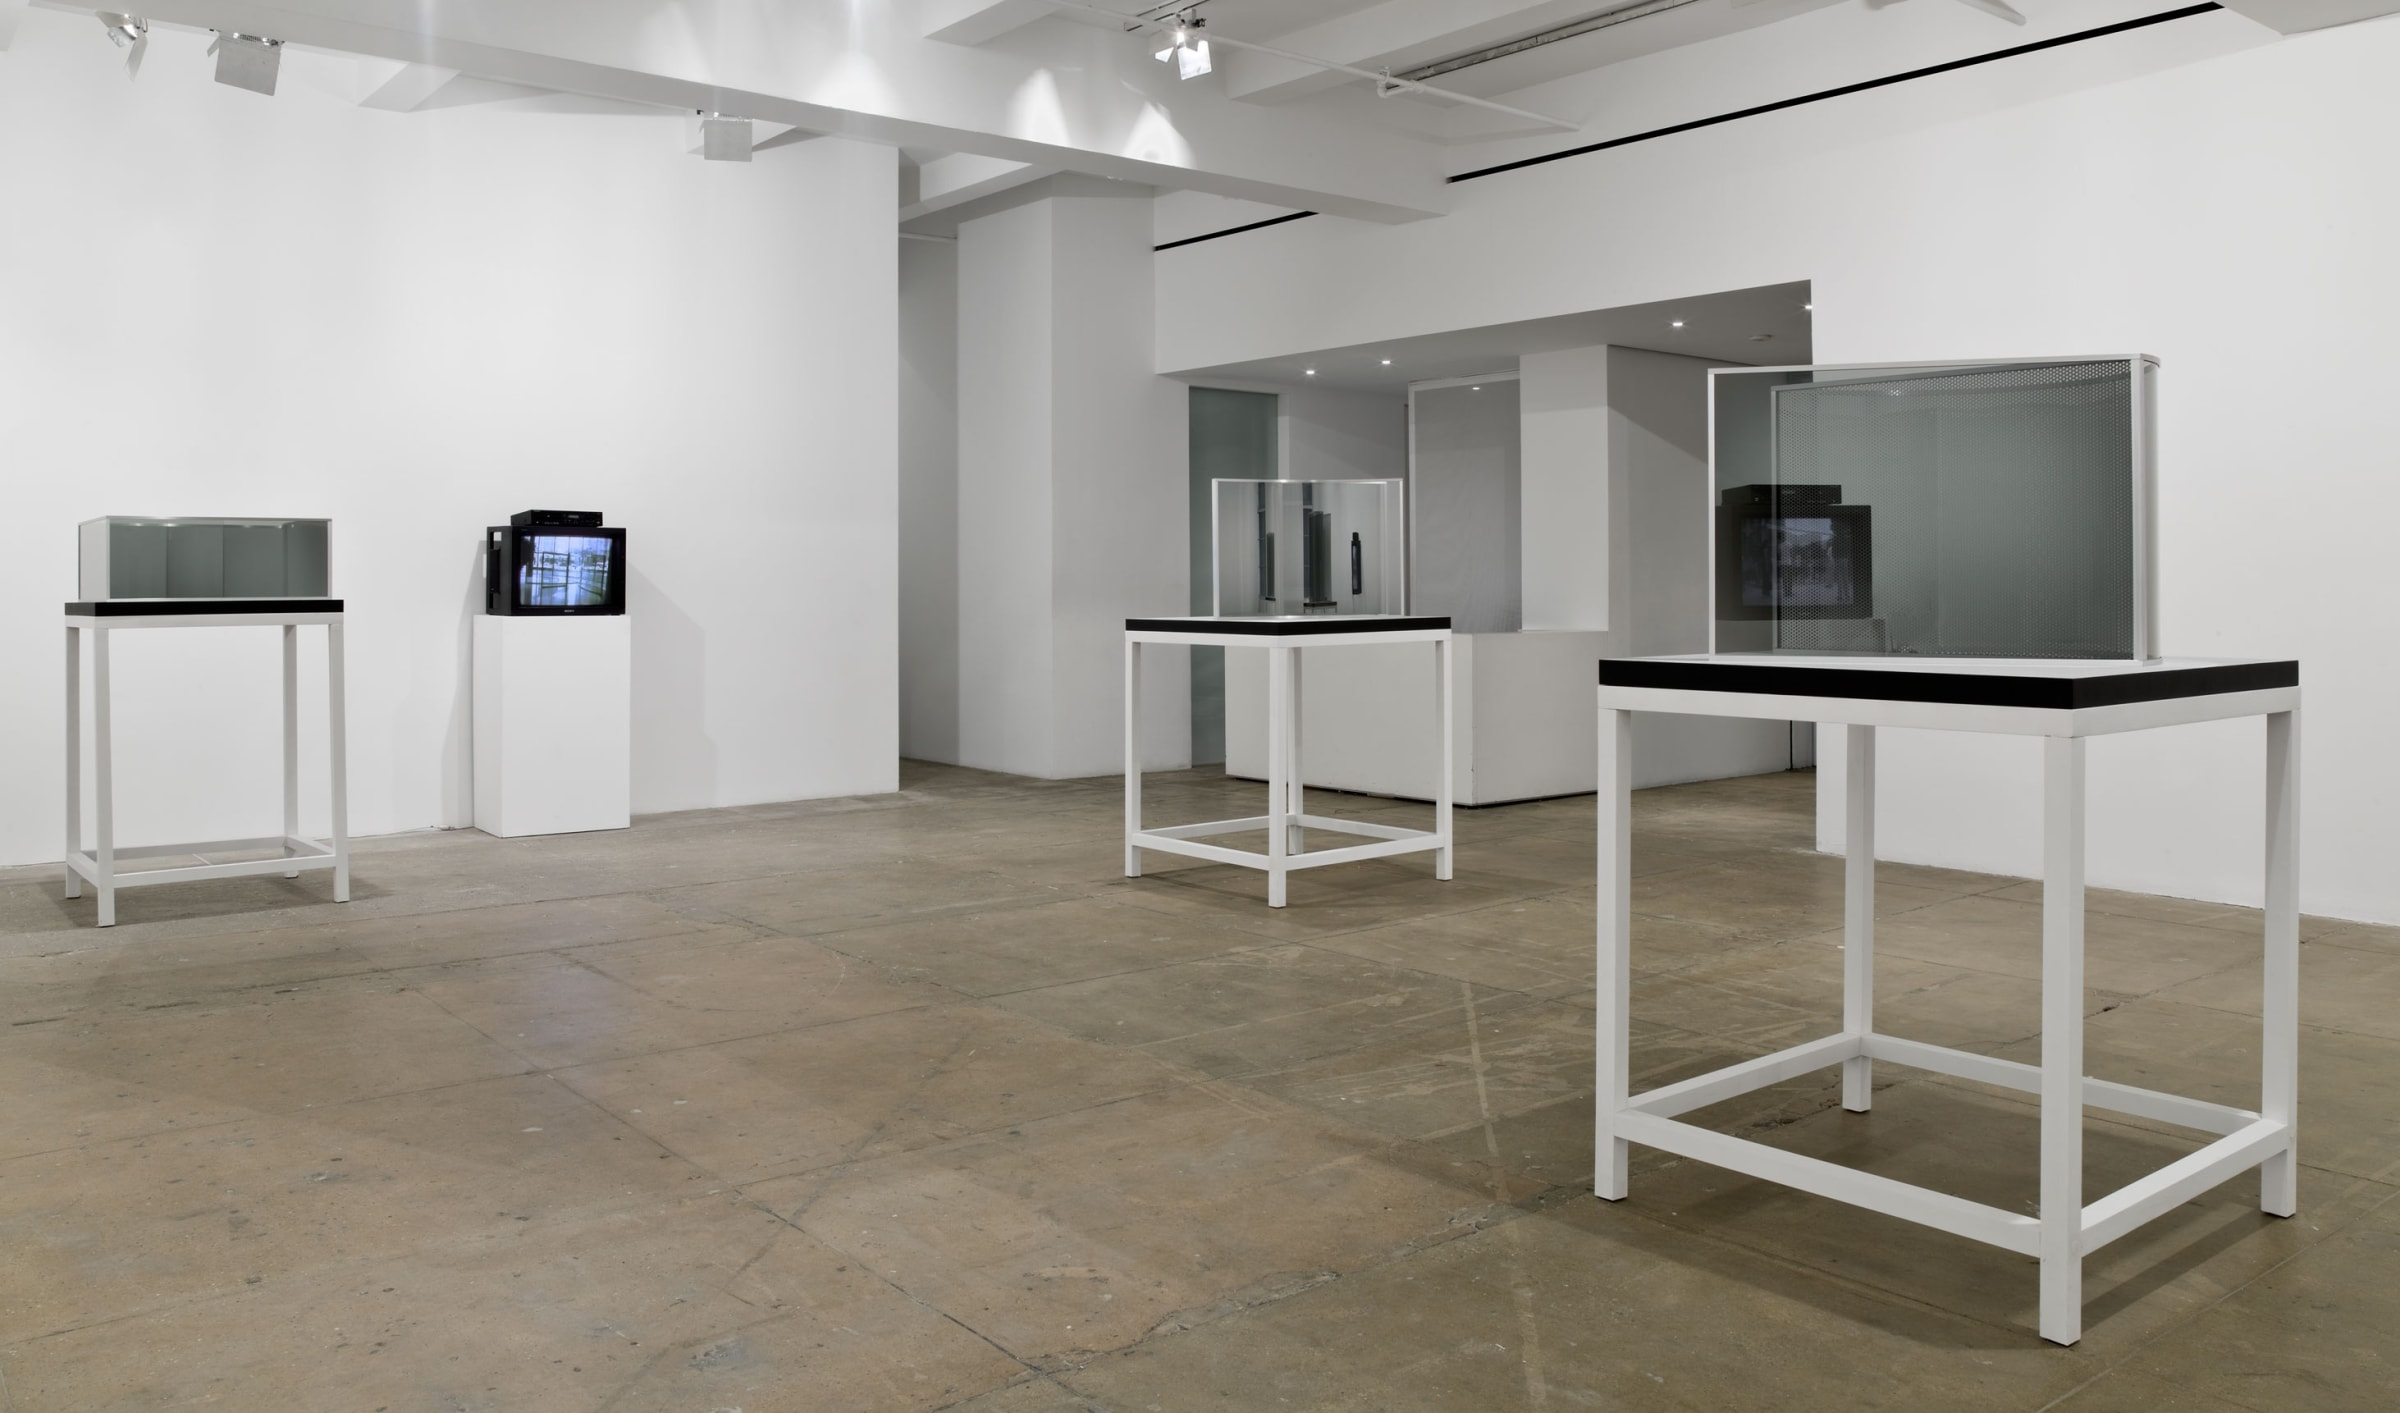 Three glass and mirror sculptures of different shapes are installed atop tables; a tv stands between projecting images.